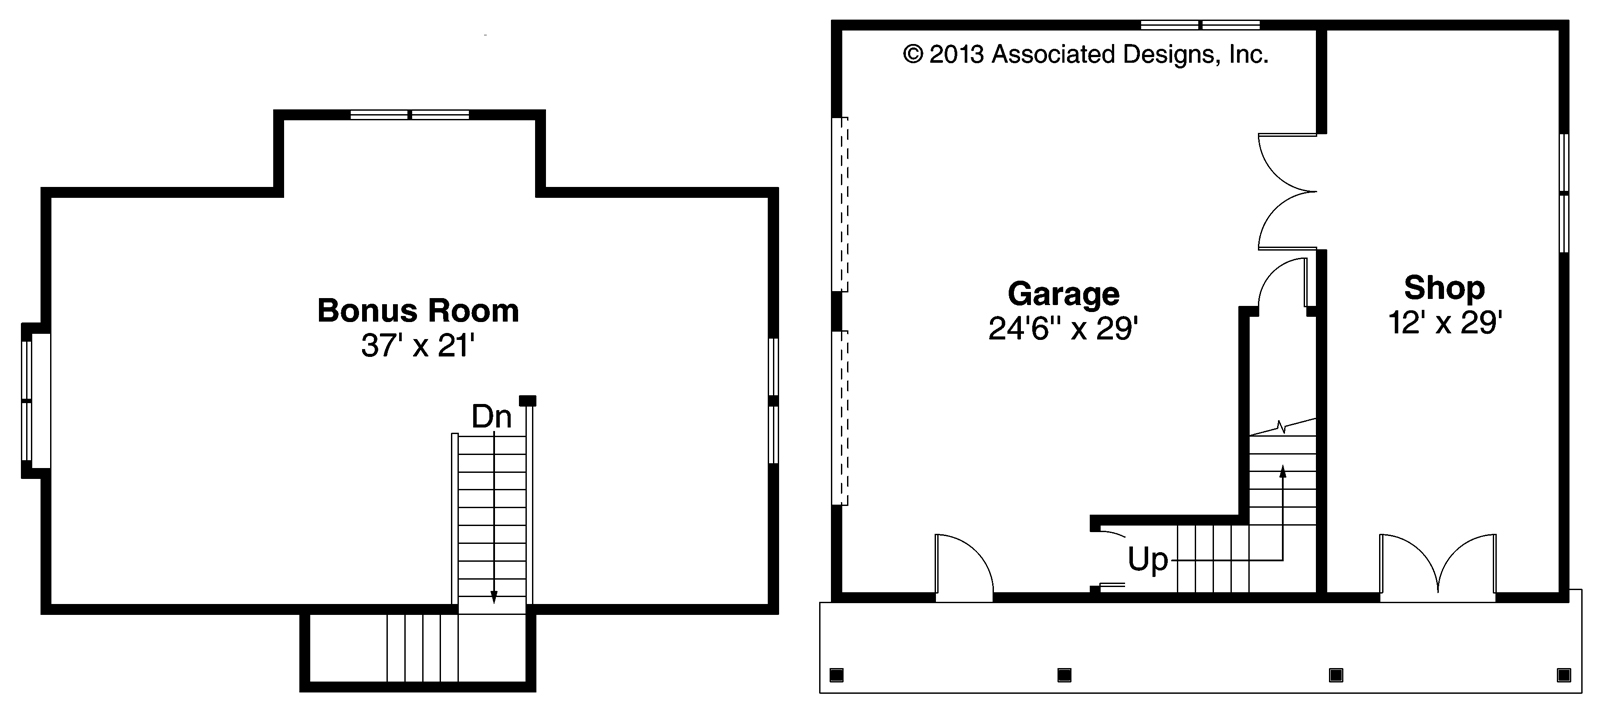 Garage plans with bonus room famin for Garage plans with bonus room